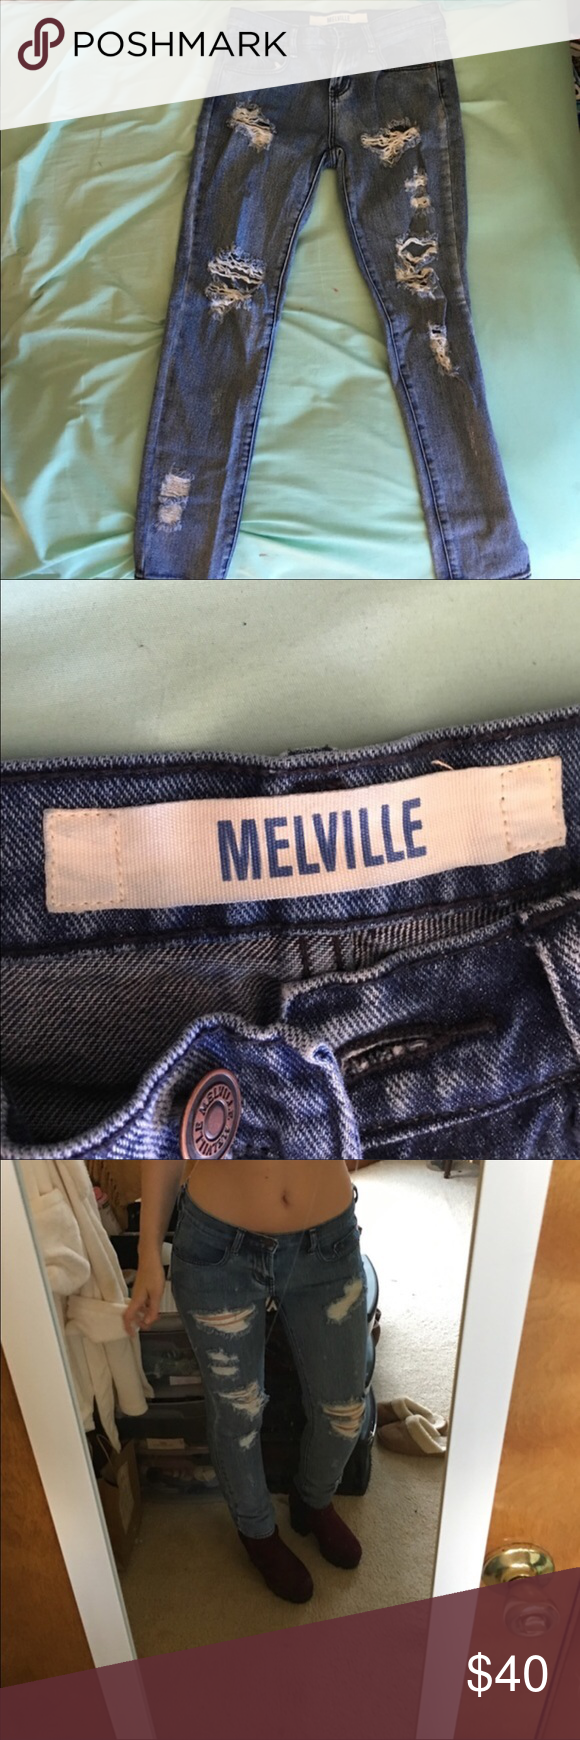 Destroyed denim jeans High waisted destroyed brandy Melville jeans Brandy Melville Jeans Skinny